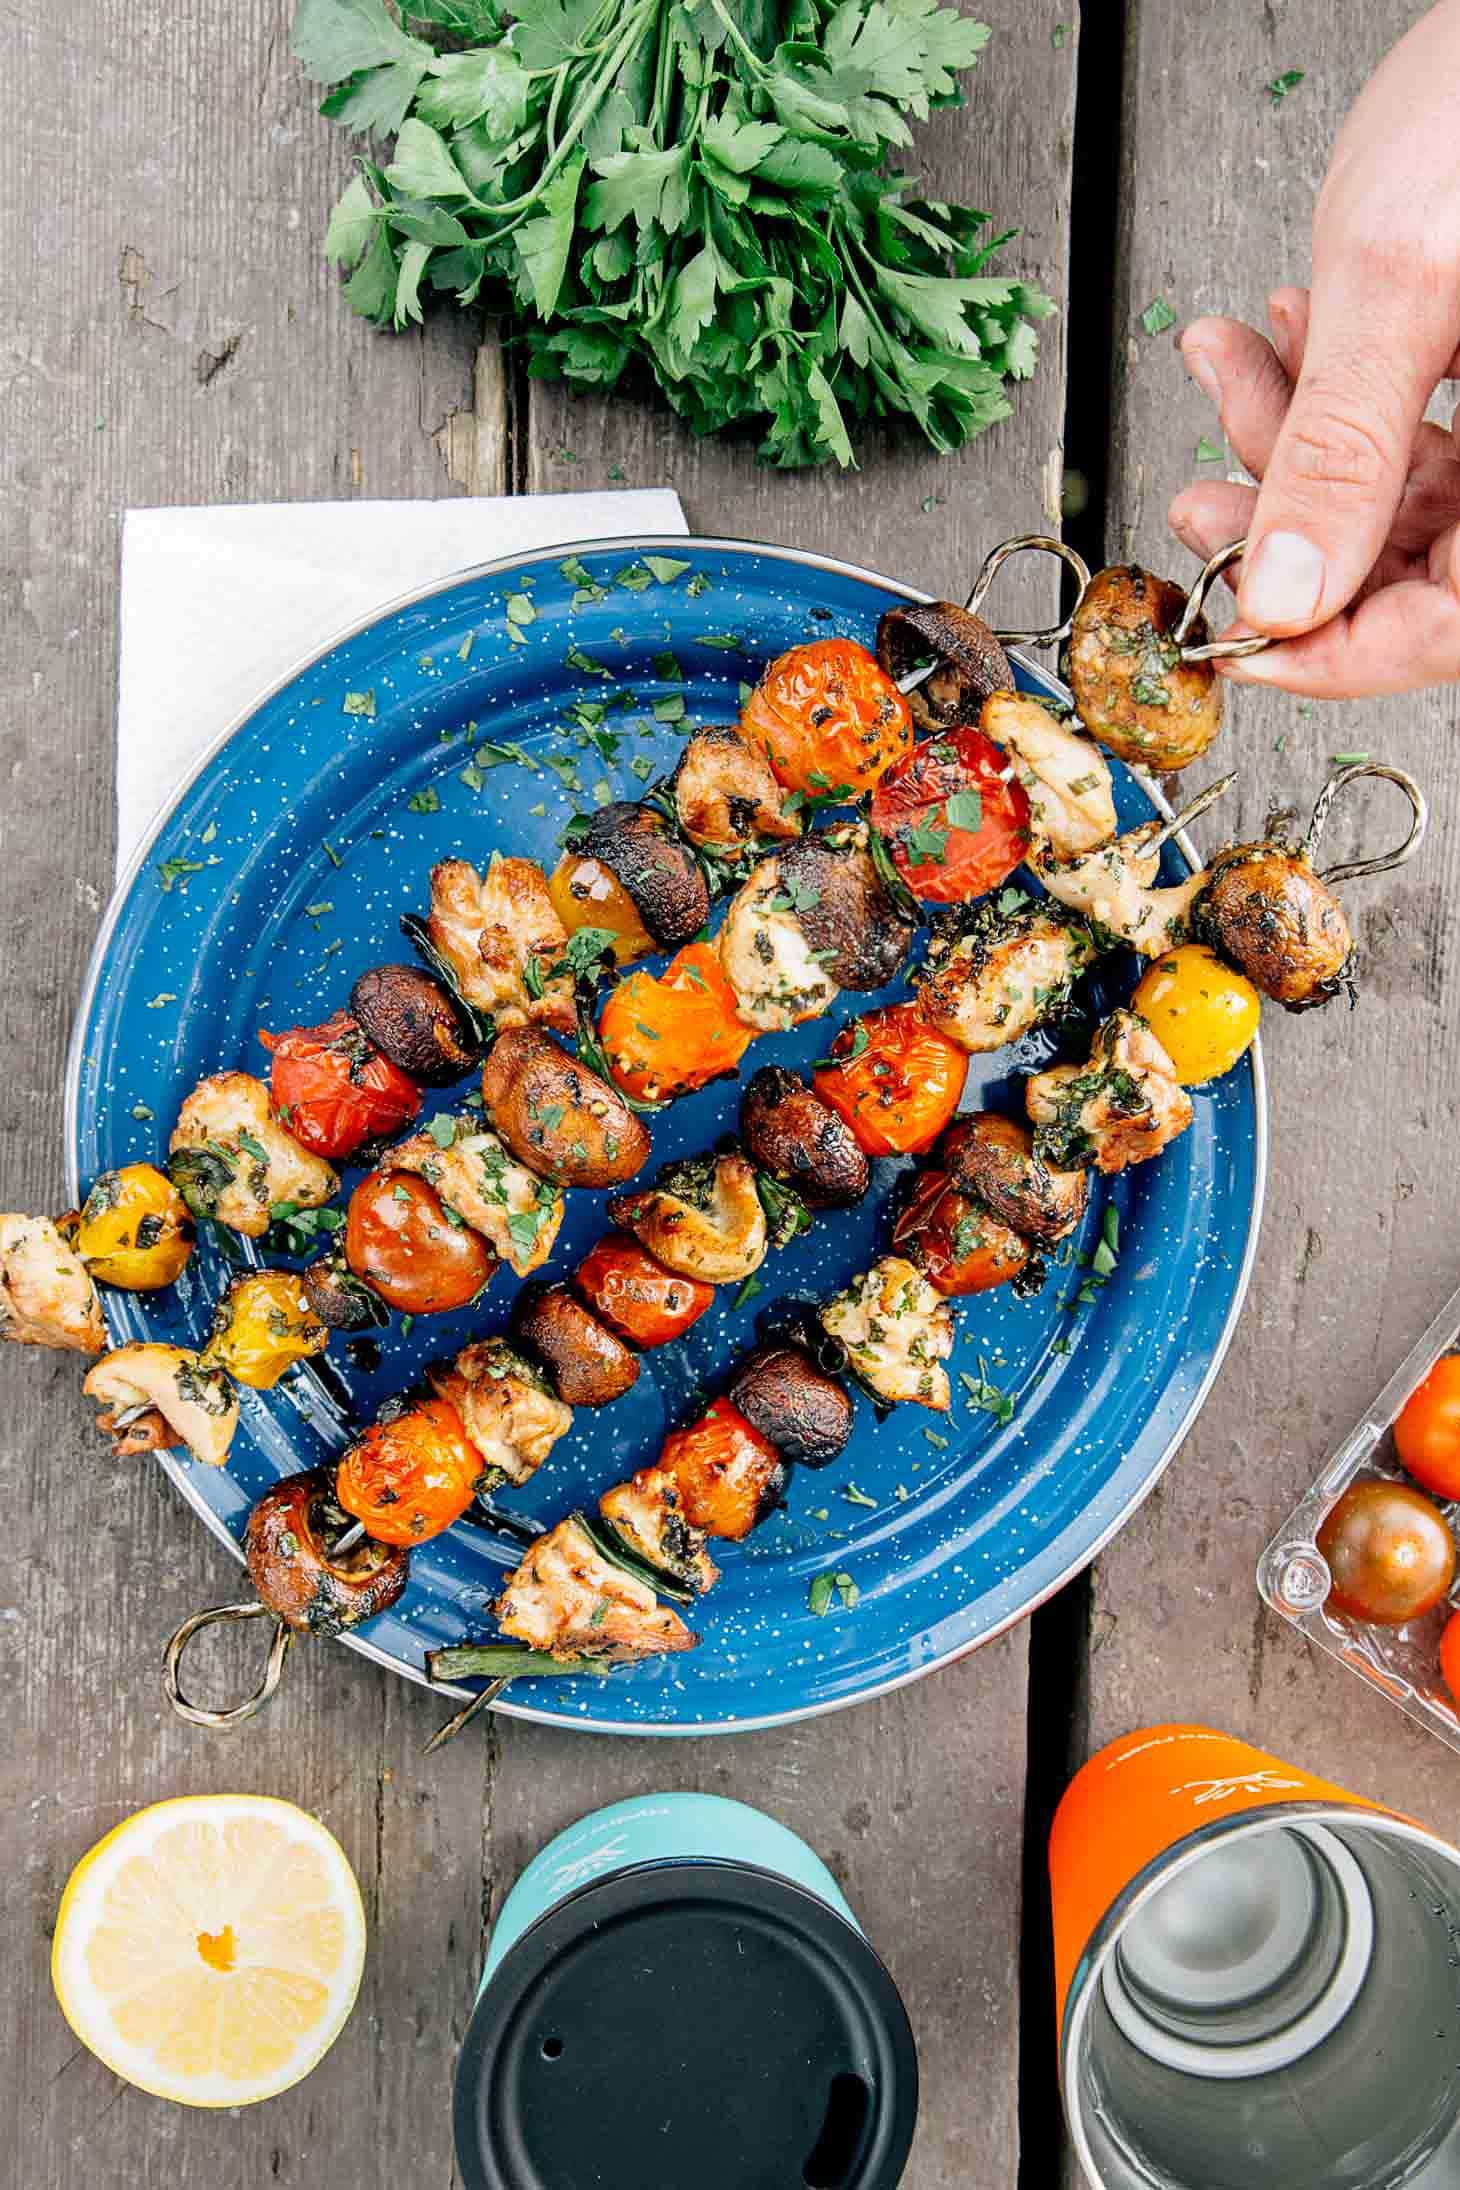 Grilled veggie & chicken skewers on a blue camping plate.